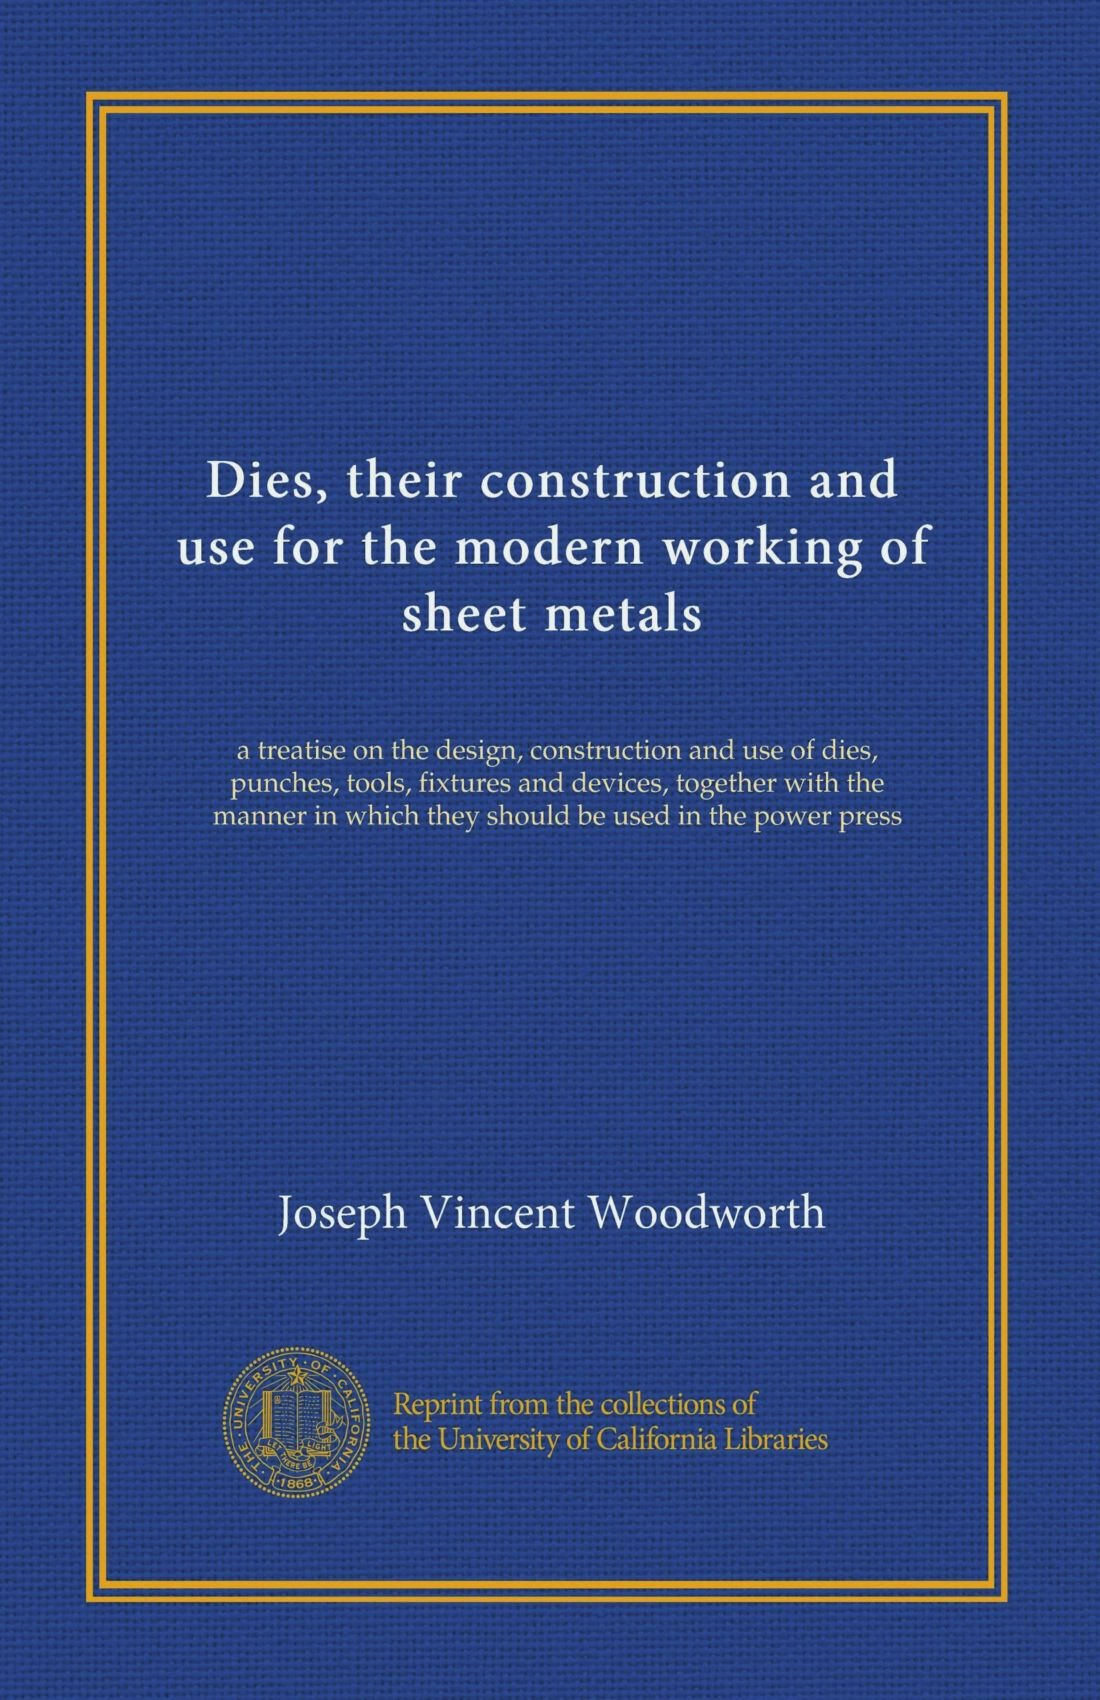 Download Dies, their construction and use for the modern working of sheet metals: a treatise on the design, construction and use of dies, punches, tools, ... which they should be used in the power press pdf epub